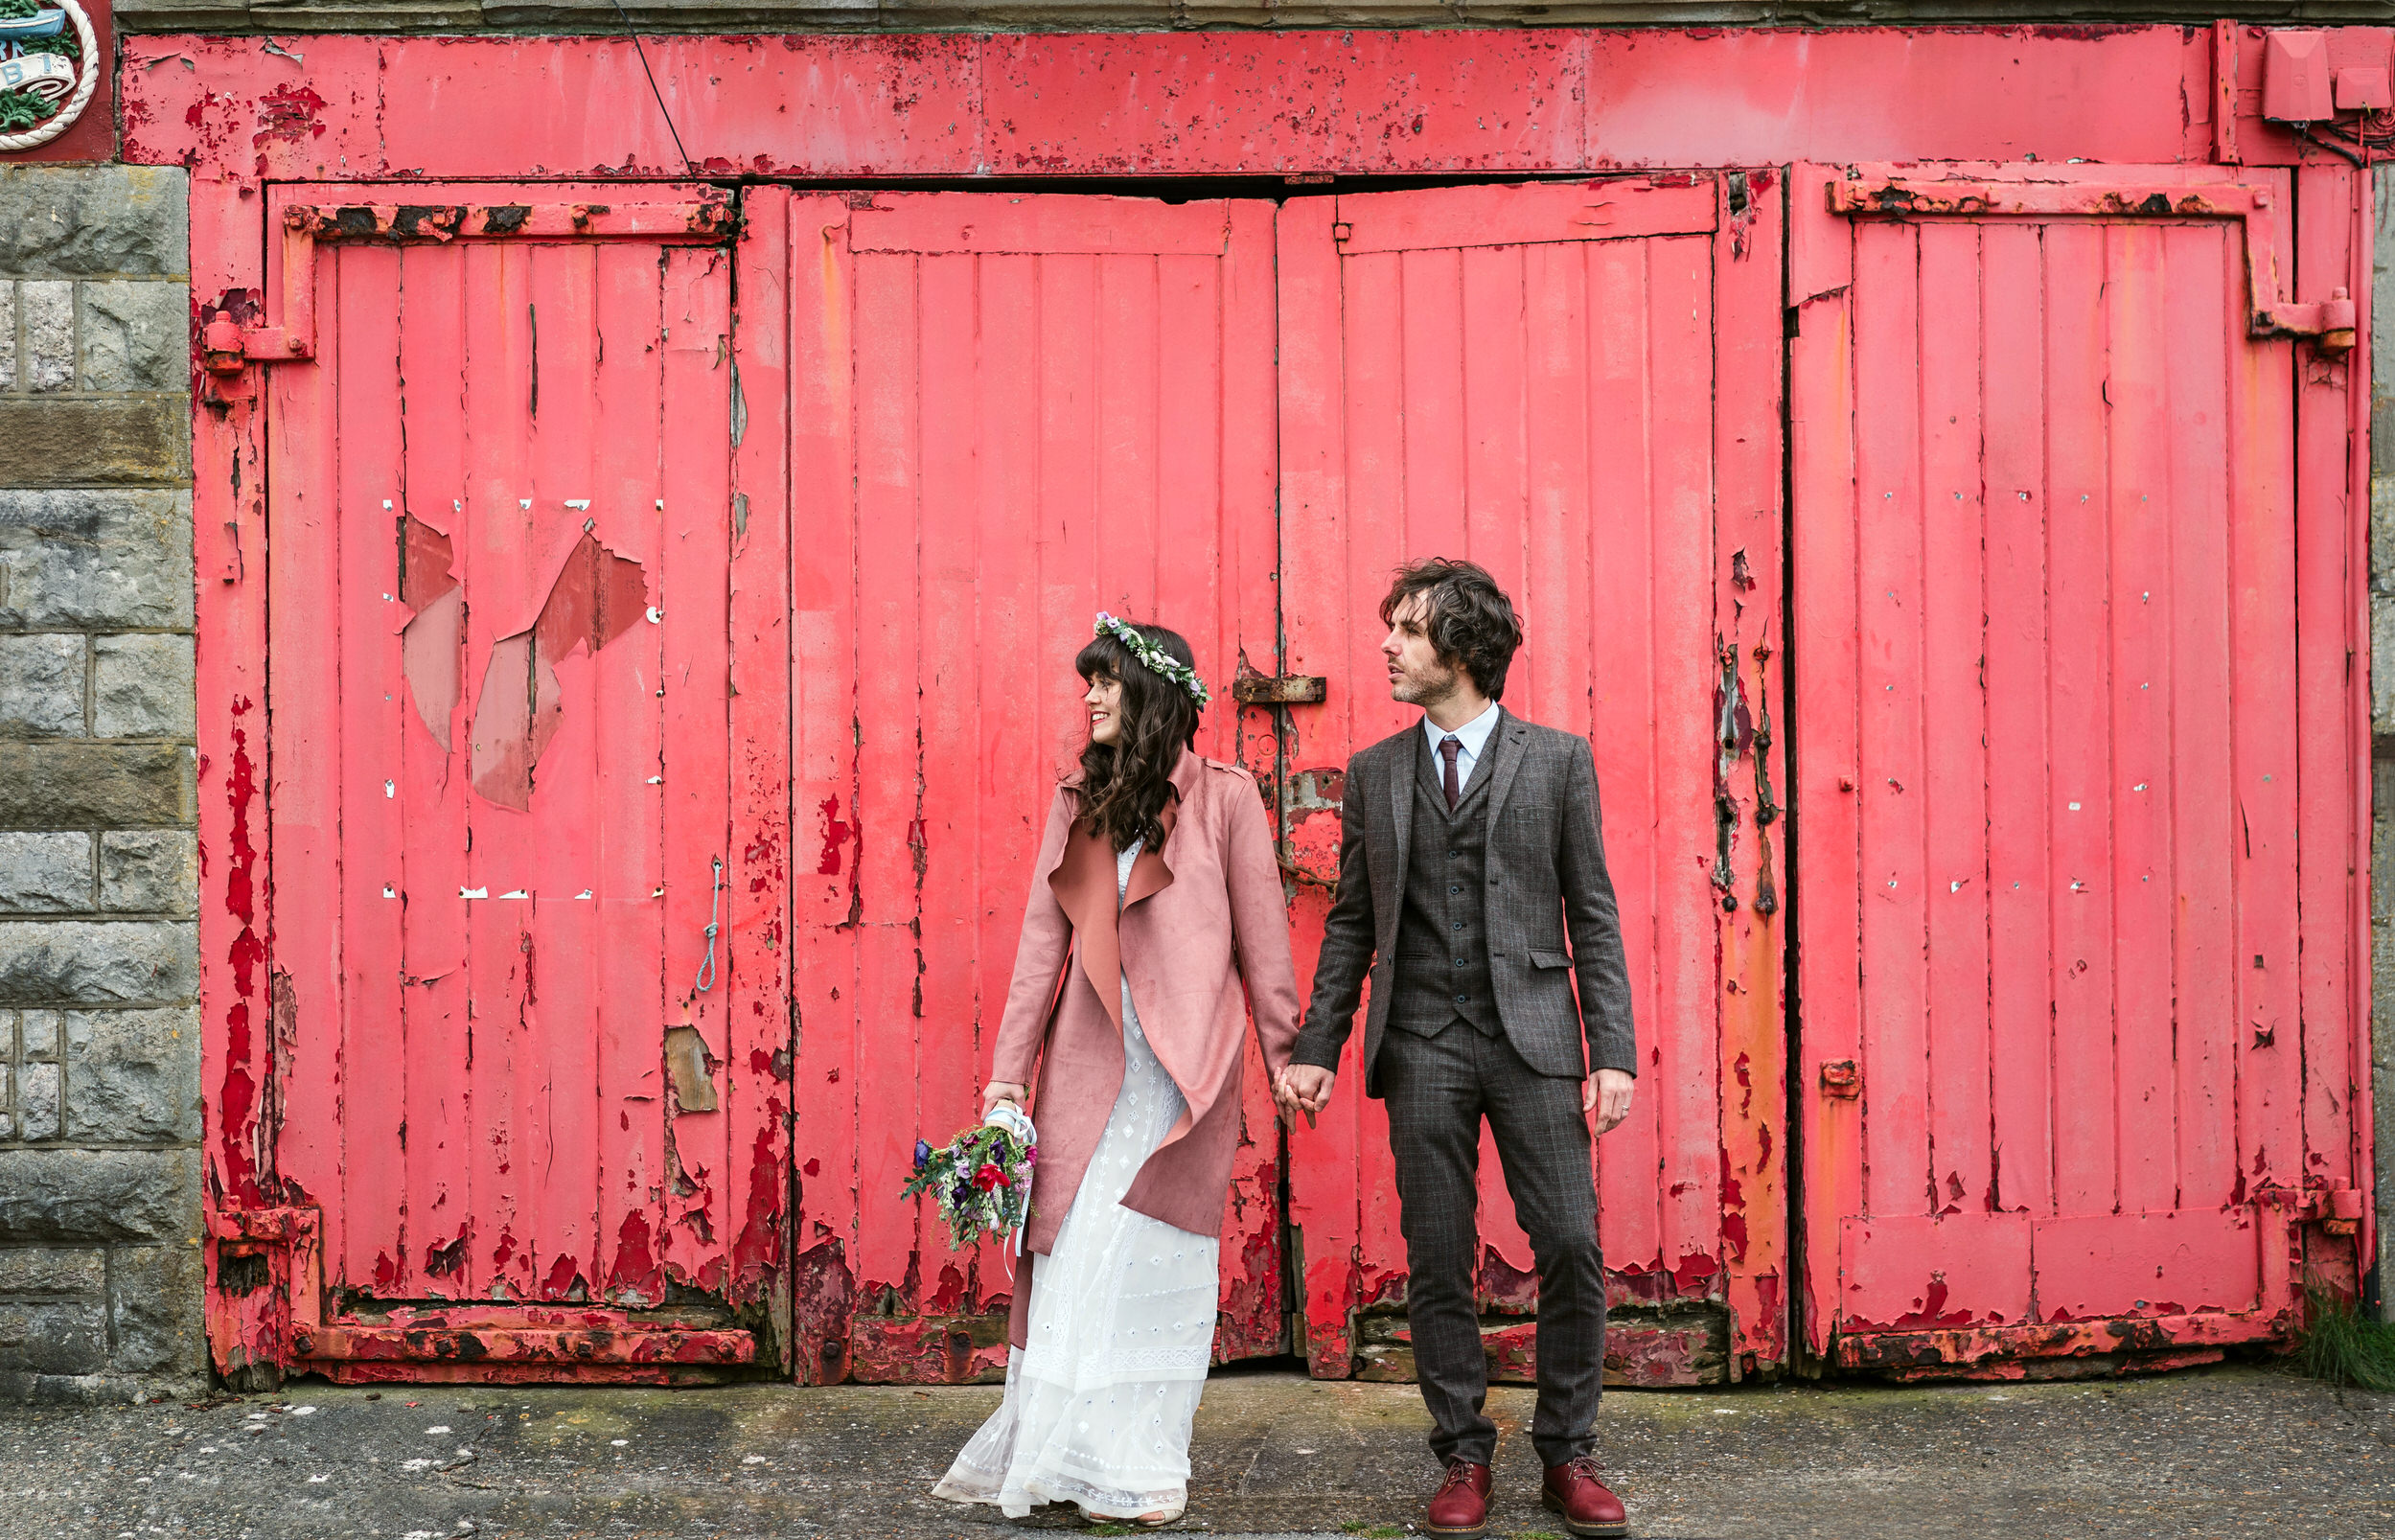 Swansea_wedding_photography_at_mumbles_pier_rustic_red_doors.jpg